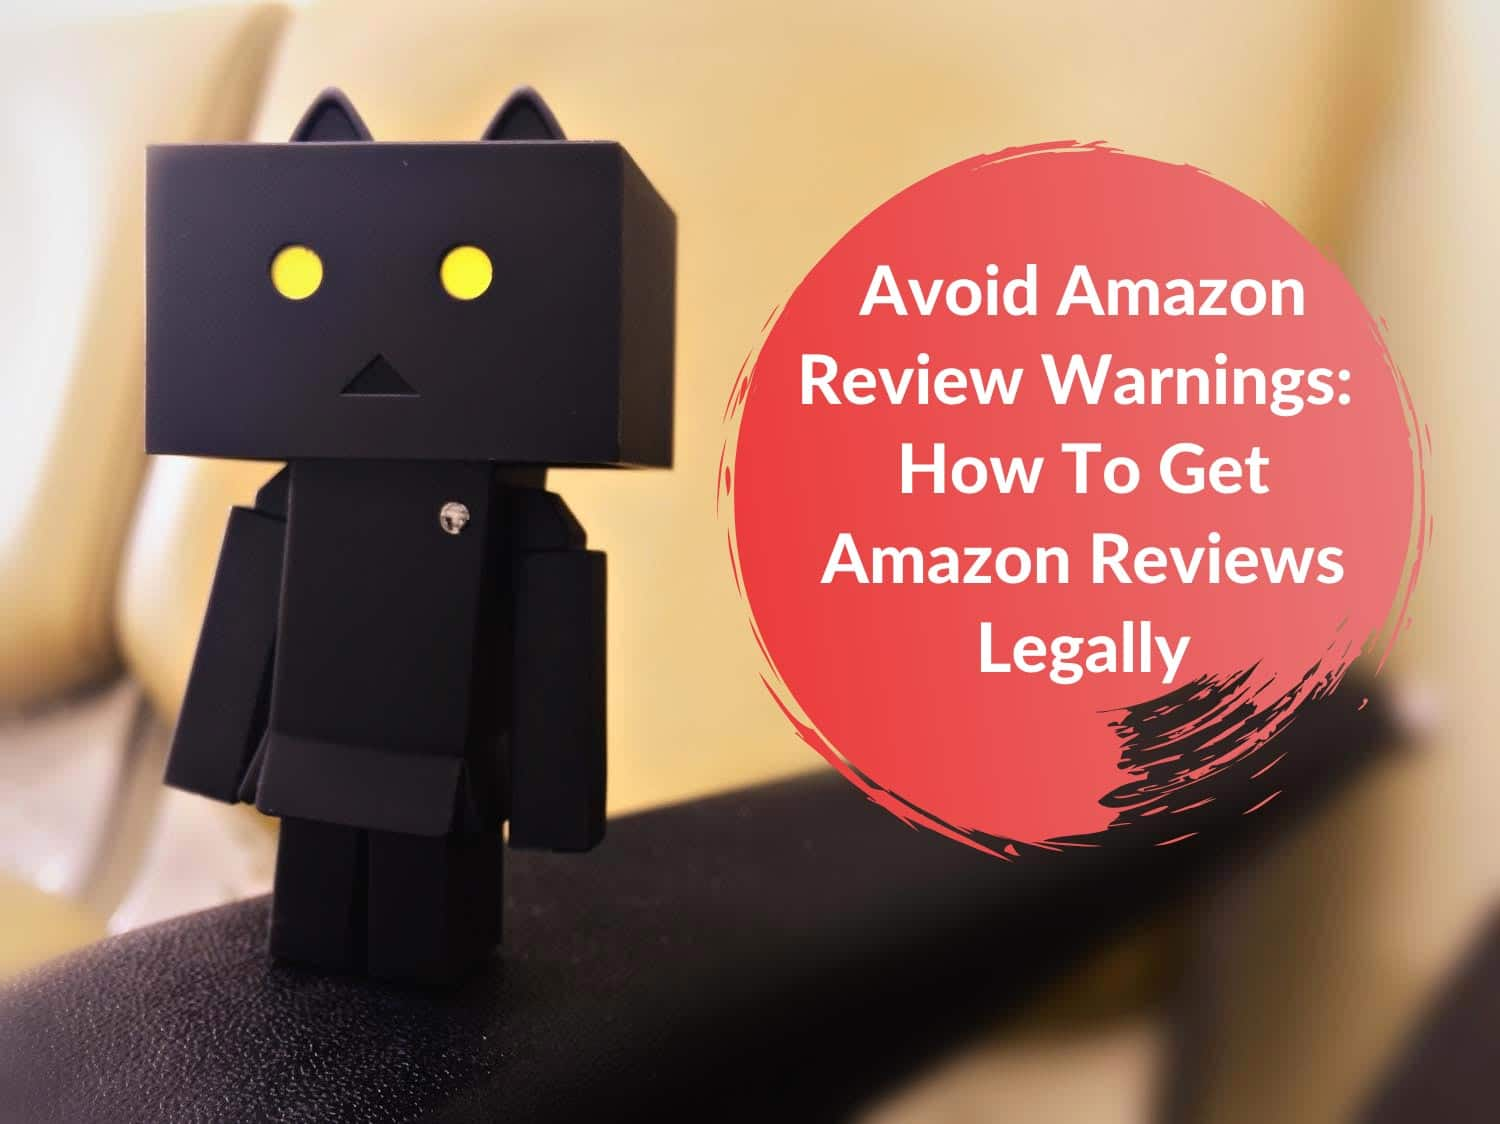 Avoid Amazon Review Warnings: How to Get Amazon Reviews Legally